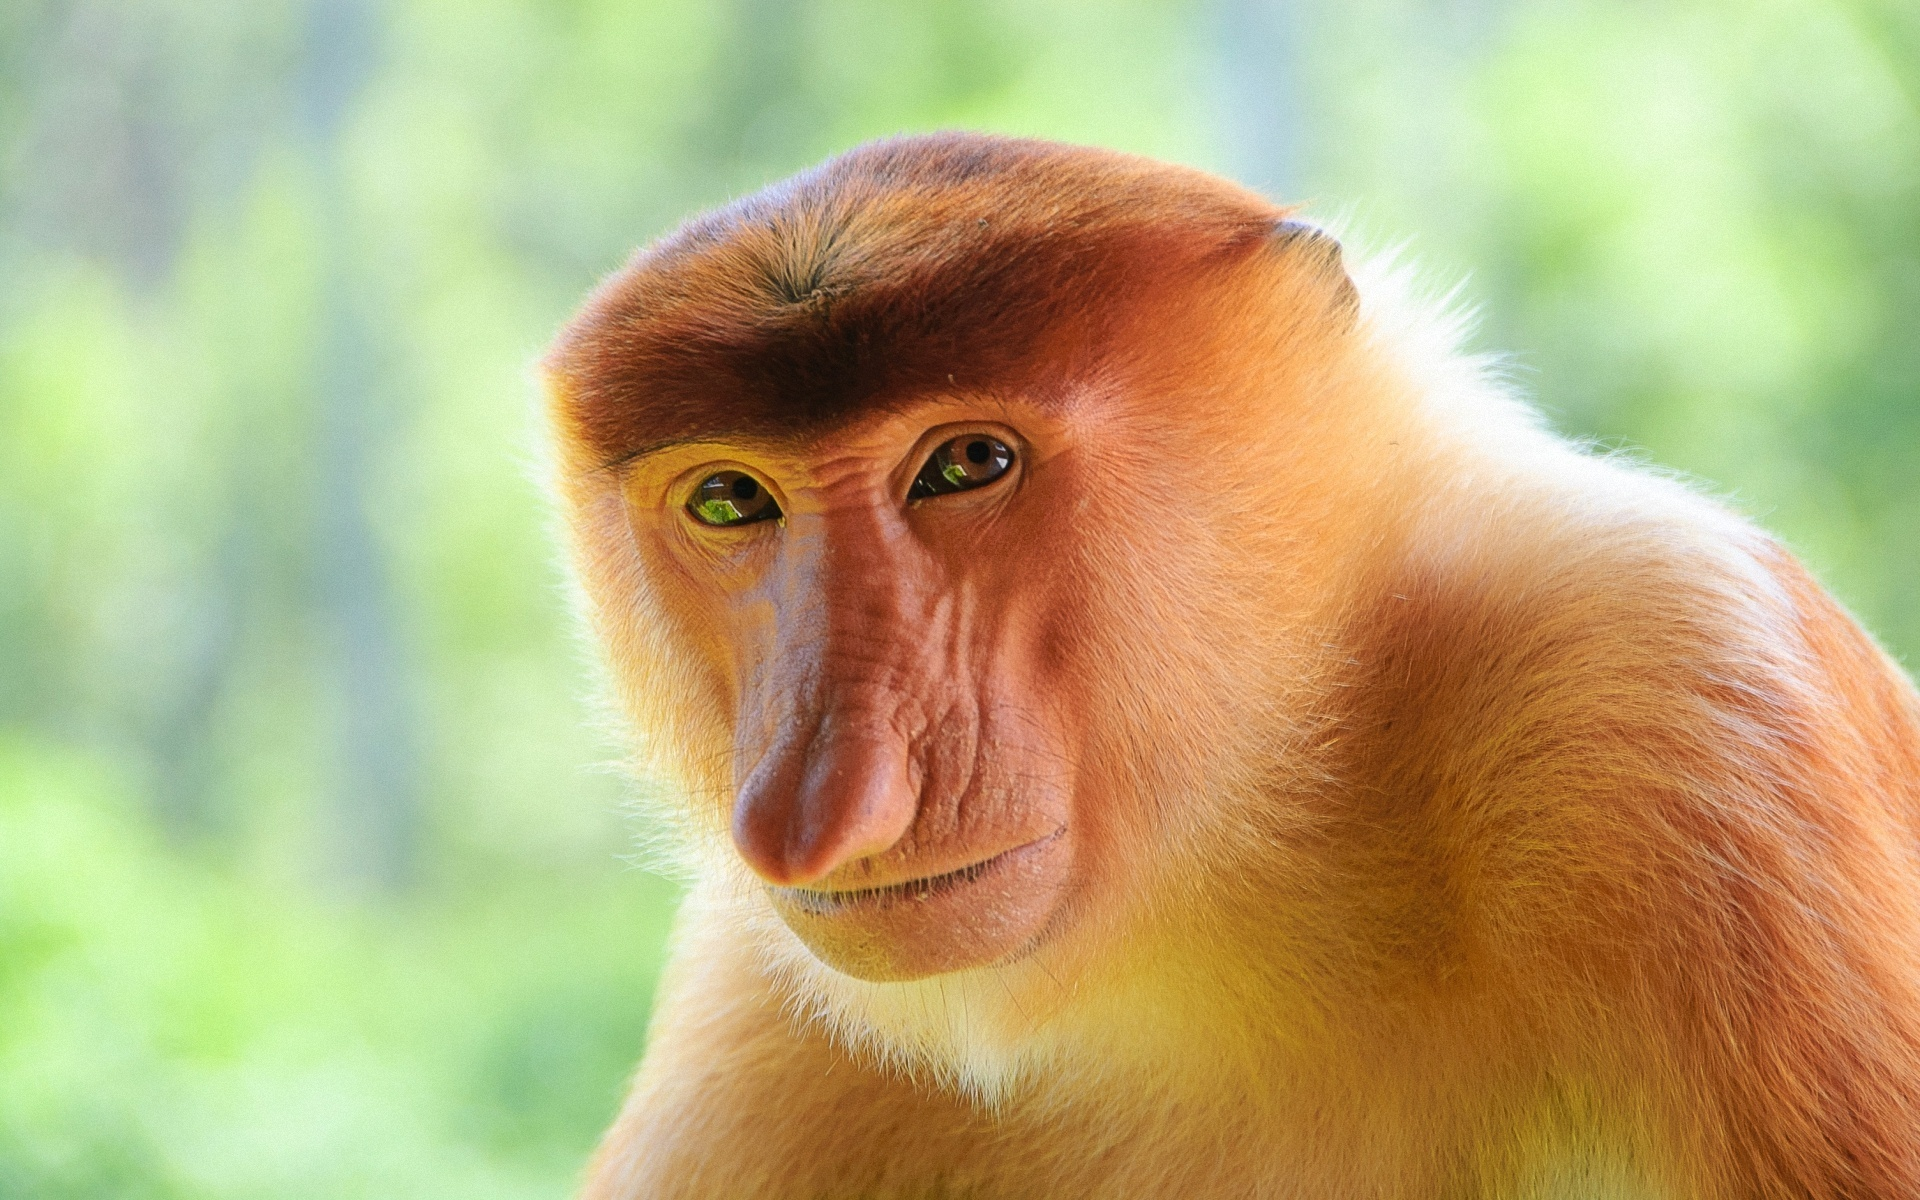 Borneo's endemic proboscis monkeys can be found at the Bako National Park